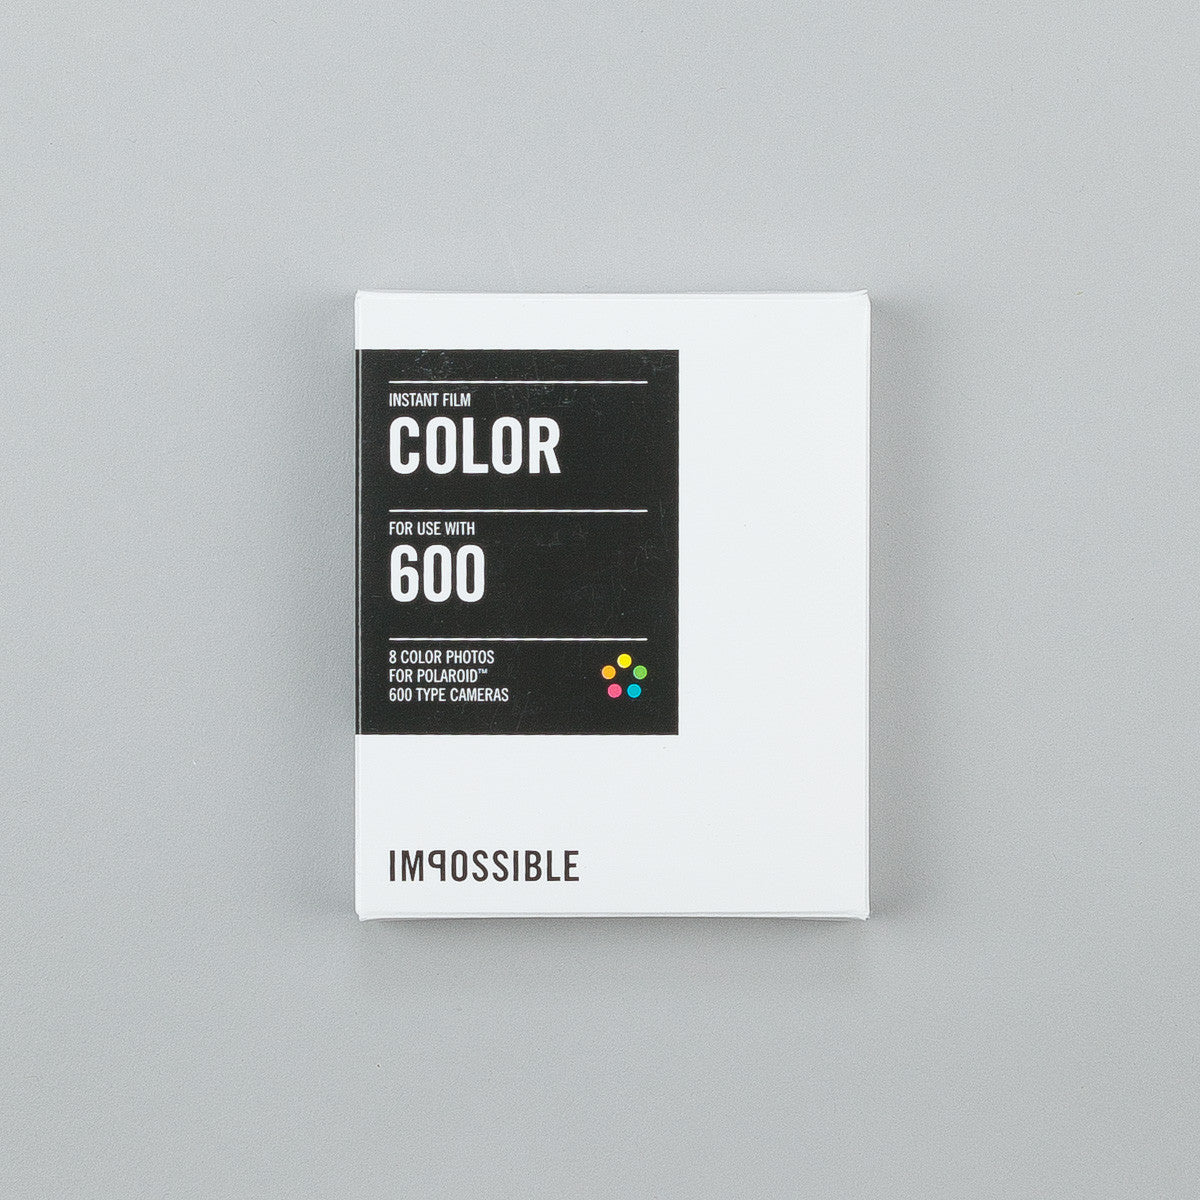 Impossible Colour Film for Polaroid 600 Type Cameras 2.0